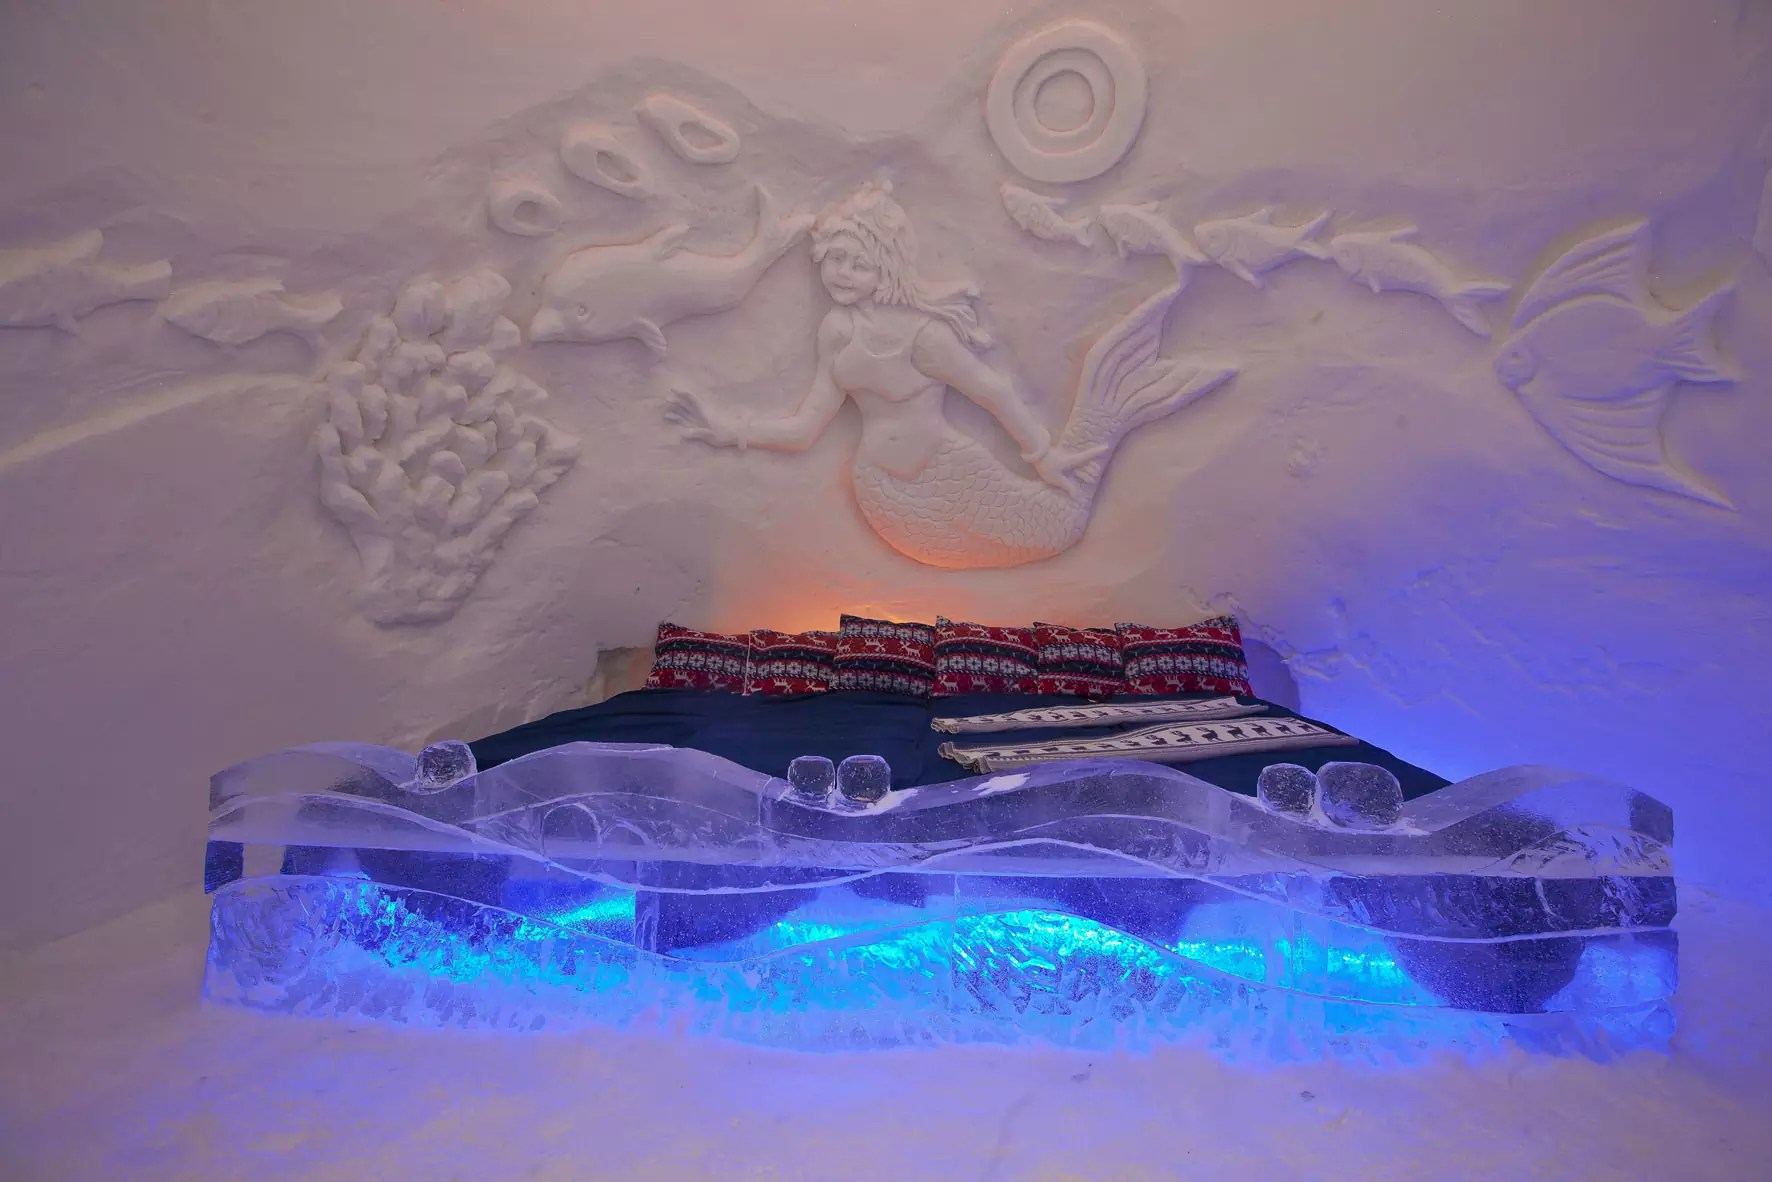 Ice and Snow Hotel - Kirkenes SnowHotel in Kirkenes, Norway - Royalty Free Stock Photo